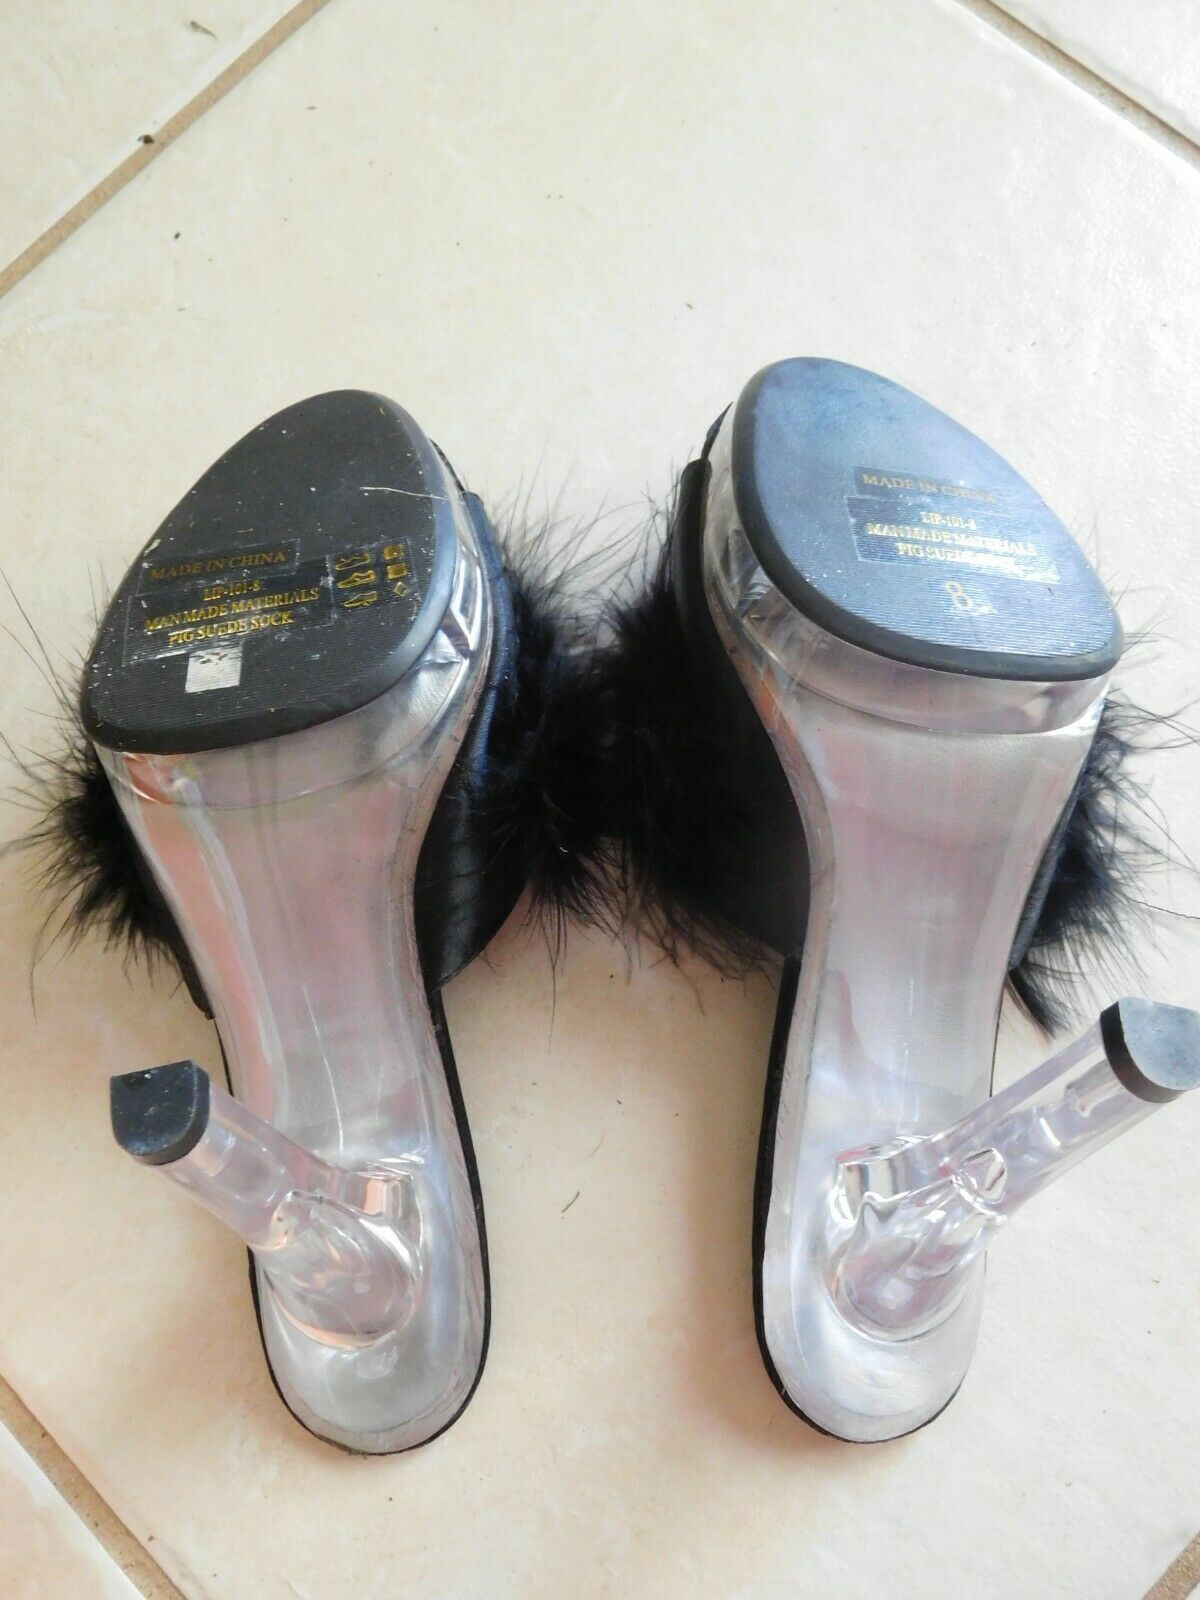 Shoes PLEASER LIP101-8 Womens Black Marabou Feather Mules Clear Heel Sz 8 NIB